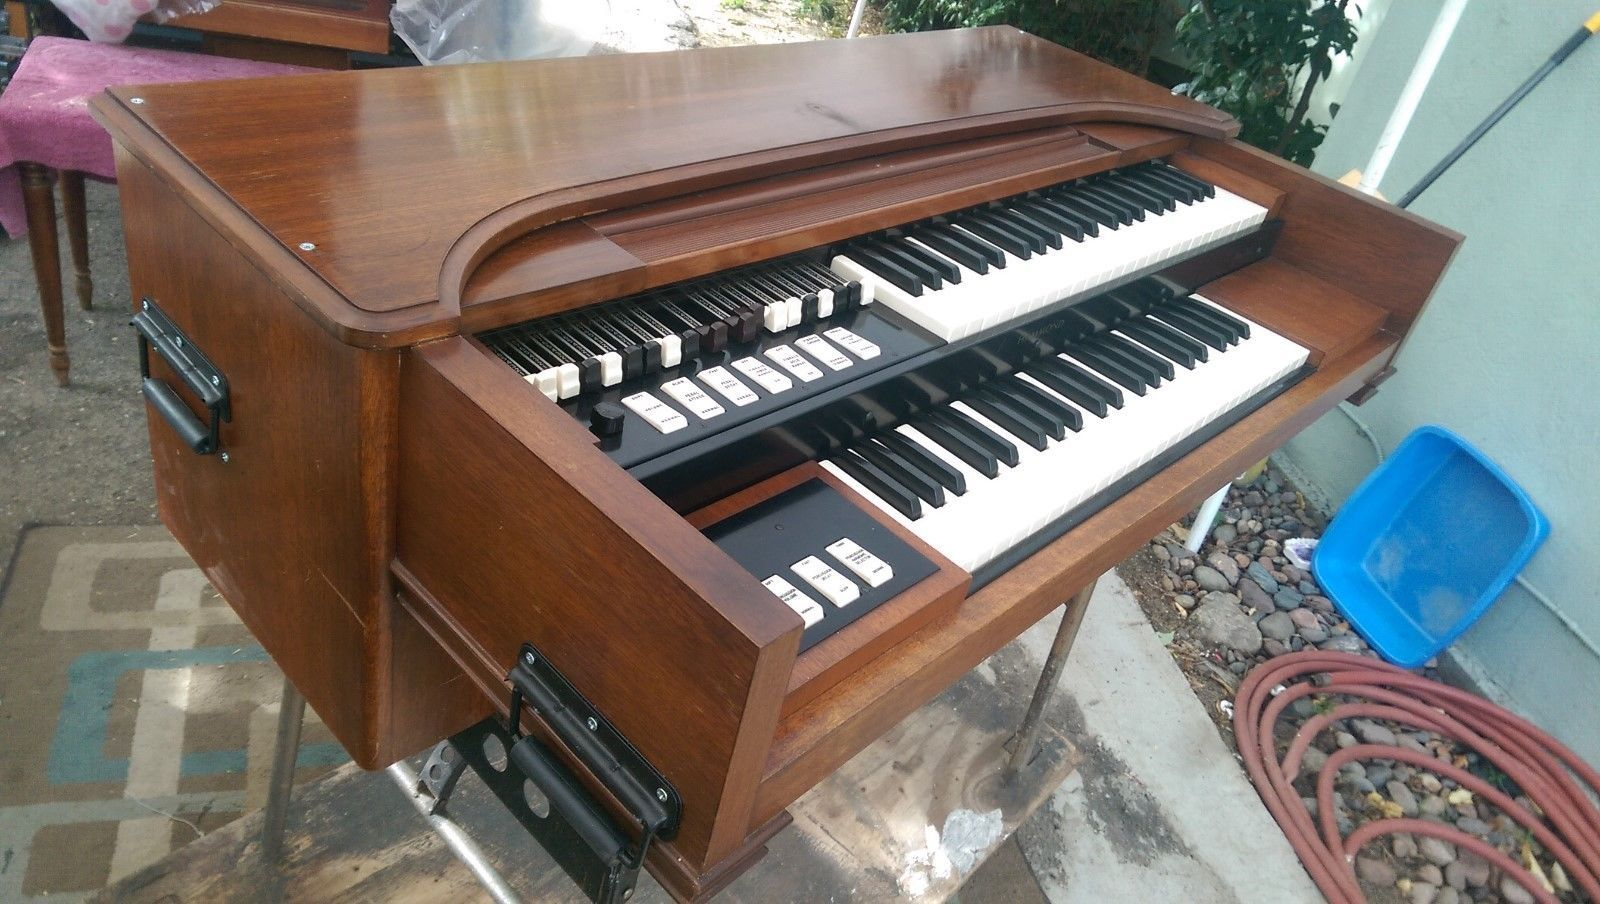 Details about HAMMOND Organ 122100 Series Service Large 34 ... on